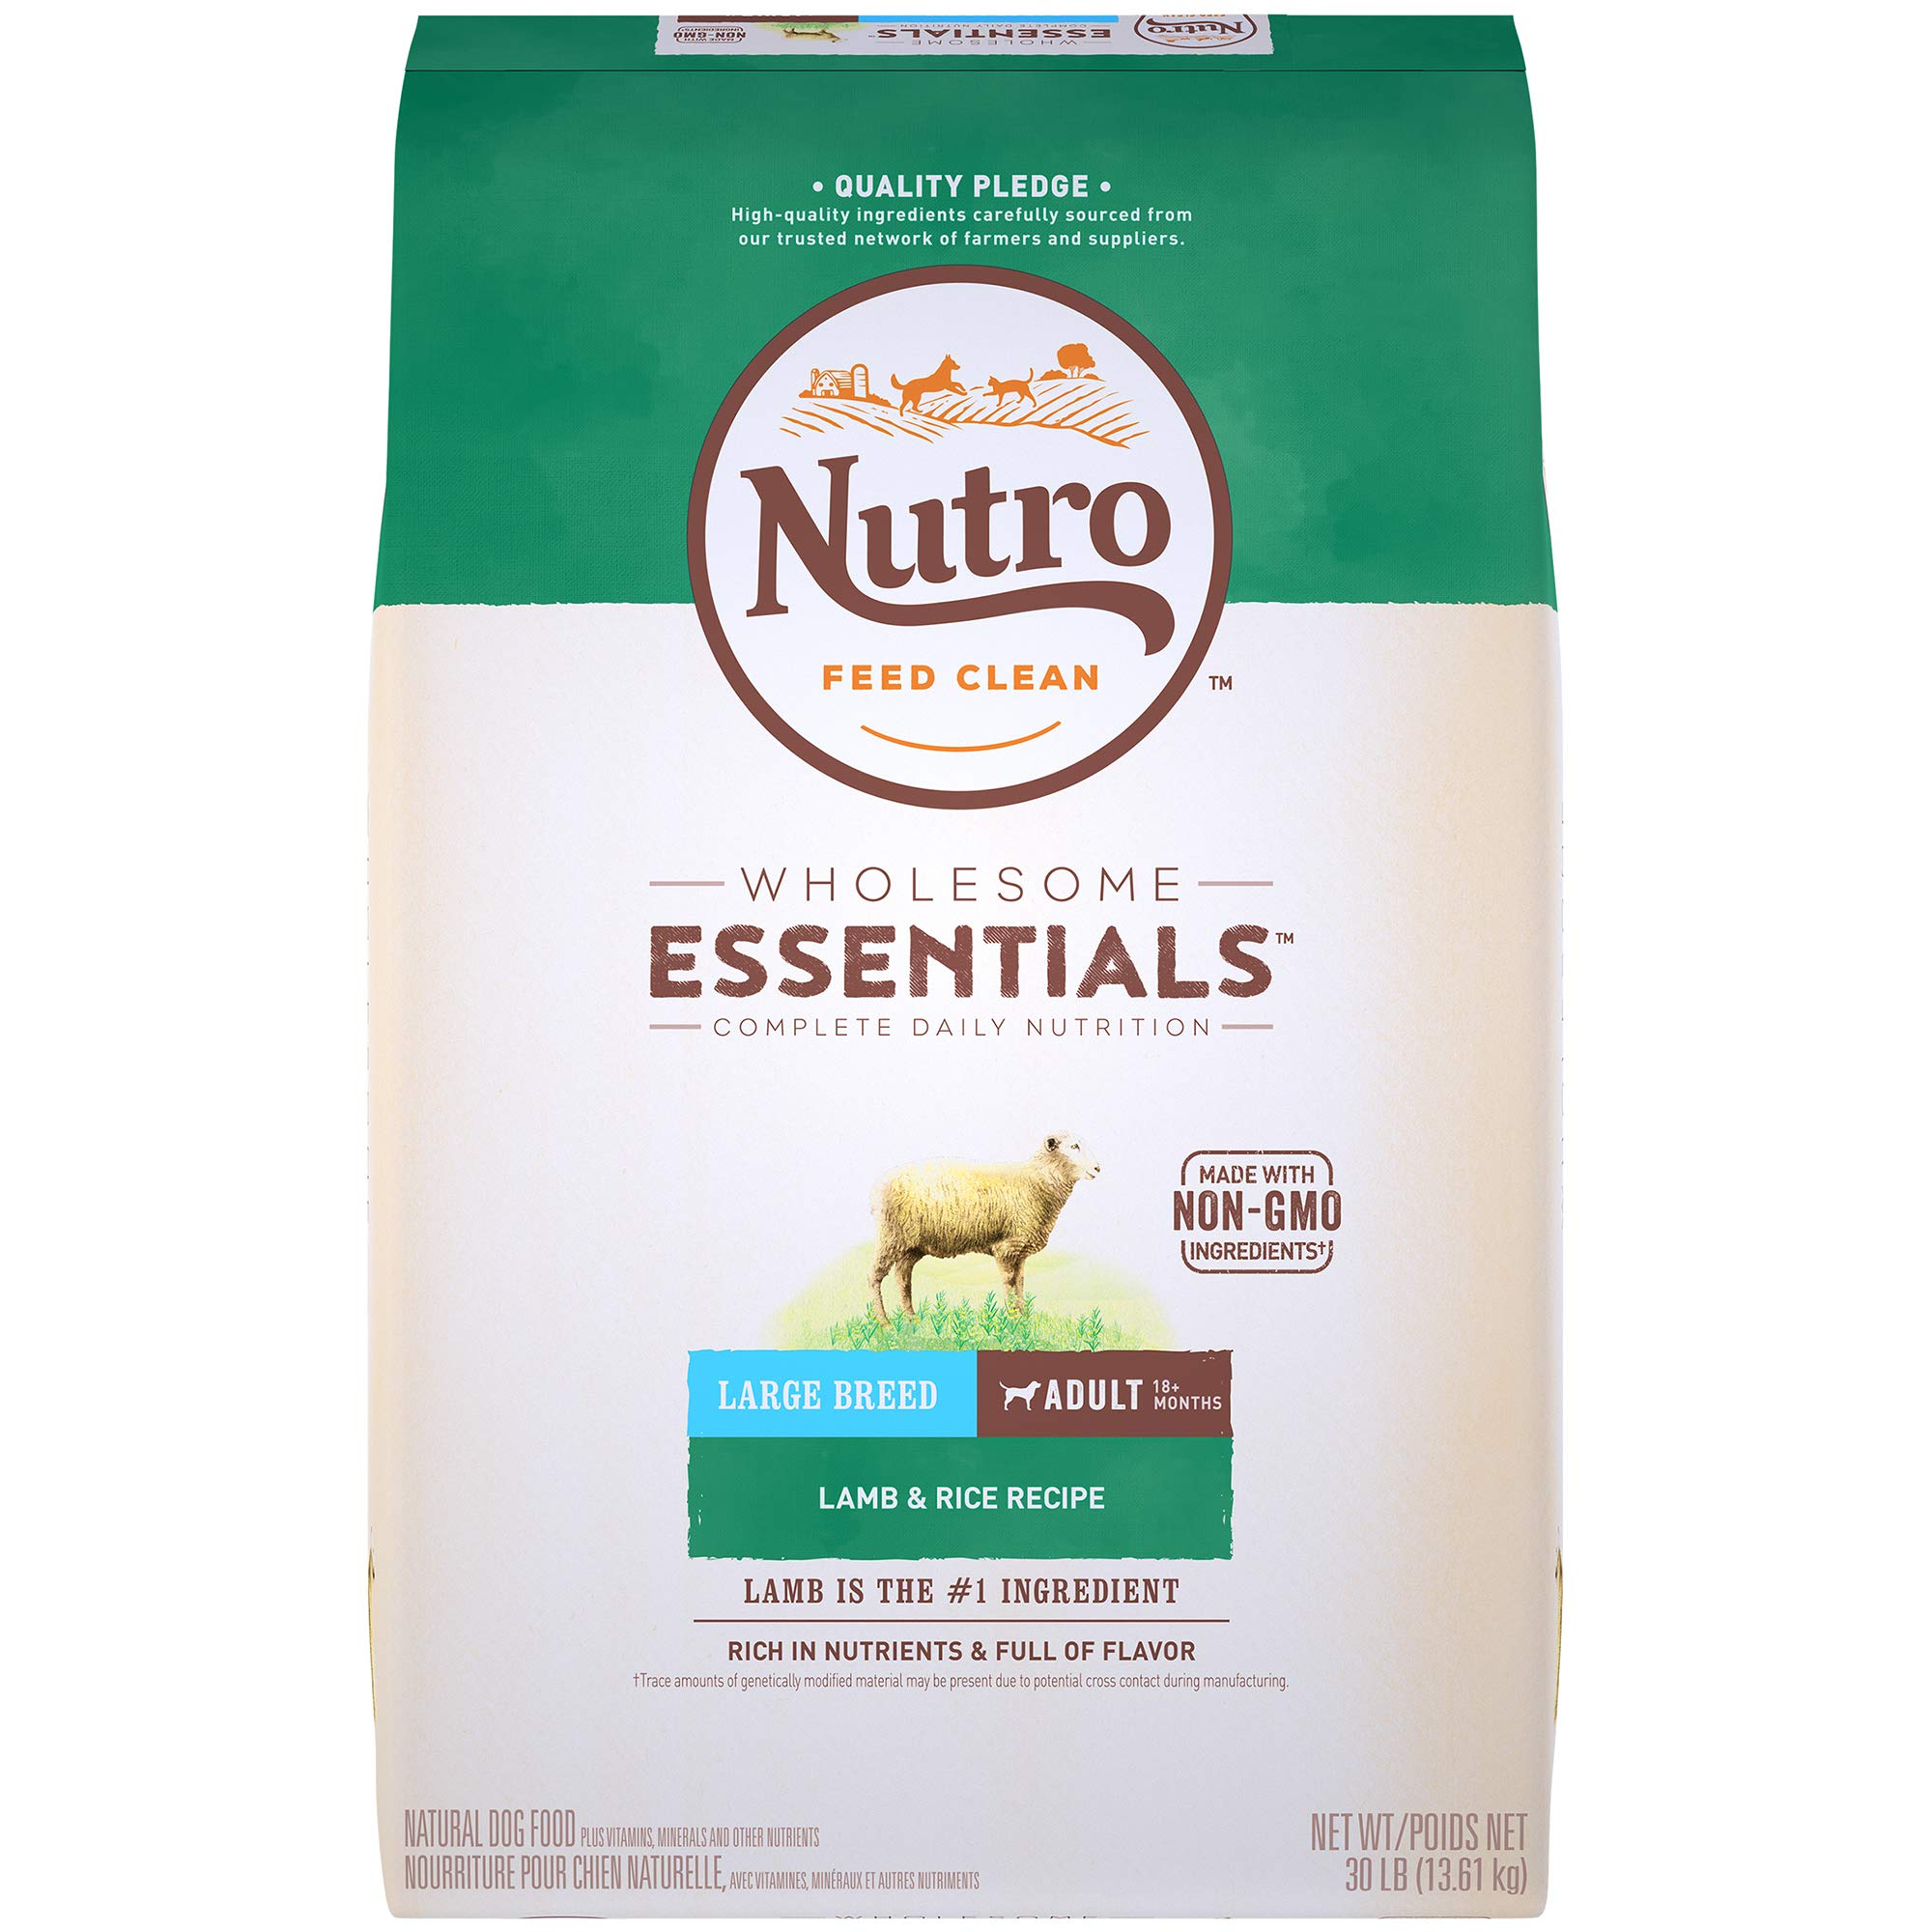 NUTRO WHOLESOME ESSENTIALS Adult Large Breed Natural Dry Dog Food Lamb & Rice Recipe, 30 lb. Bag by Nutro